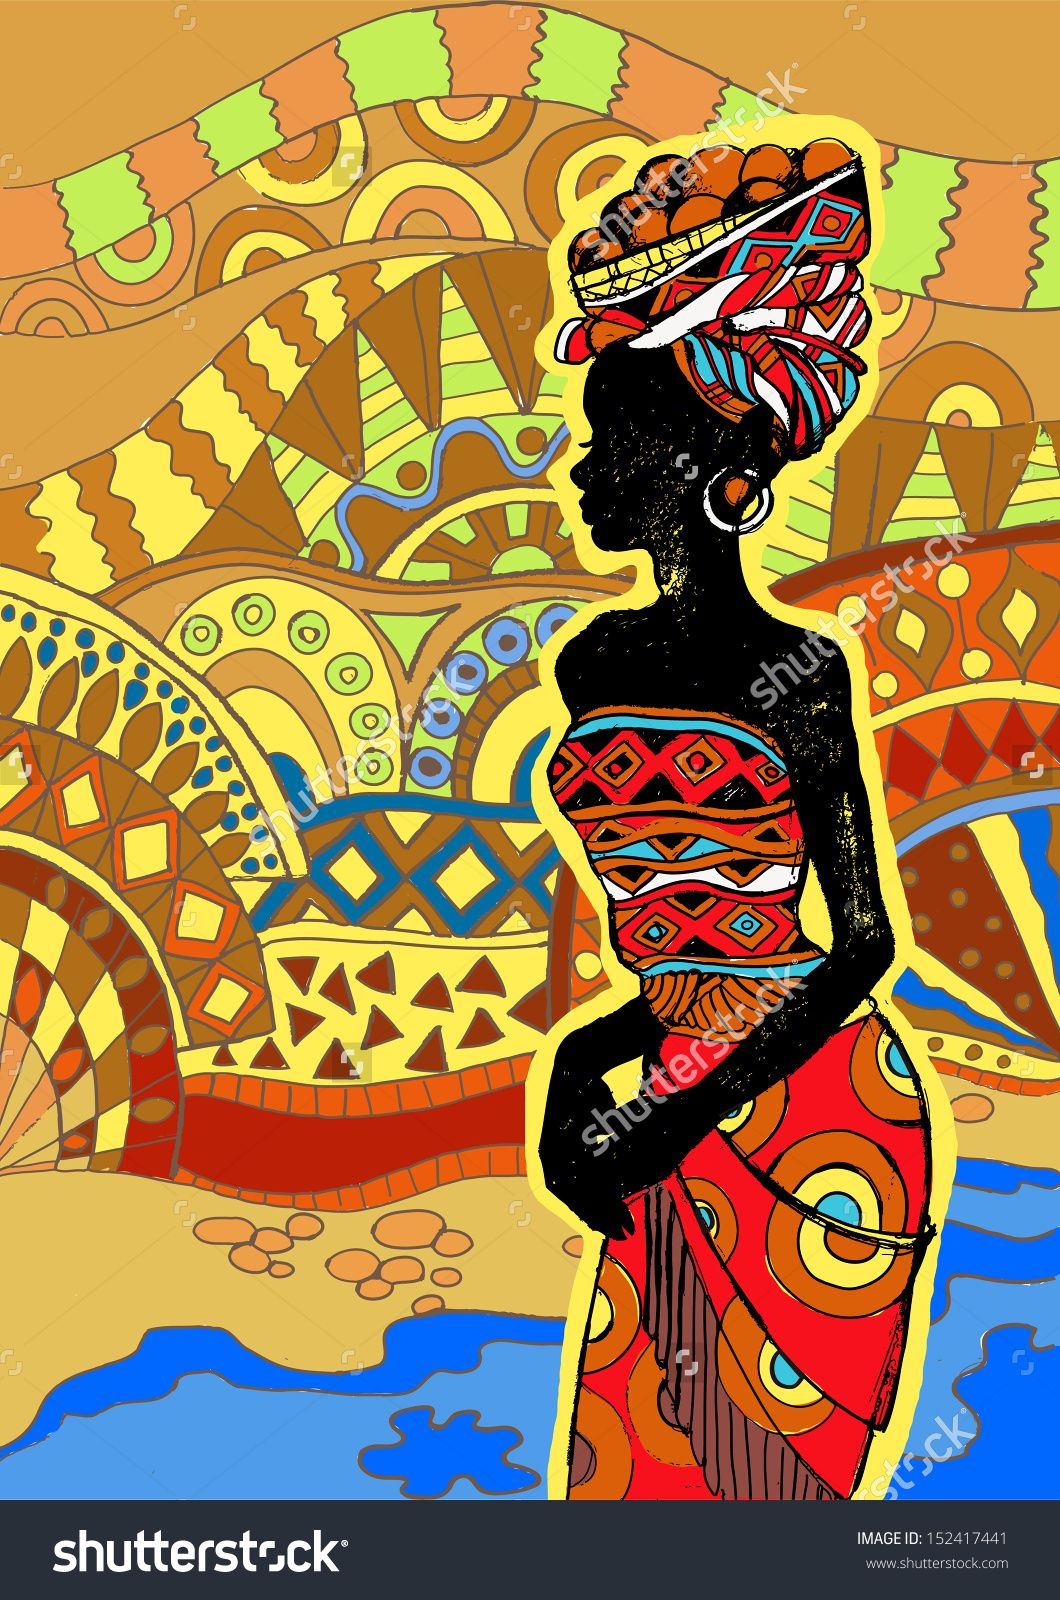 Pin by Brenna Smothers on African Goddesses | Pinterest | African ...